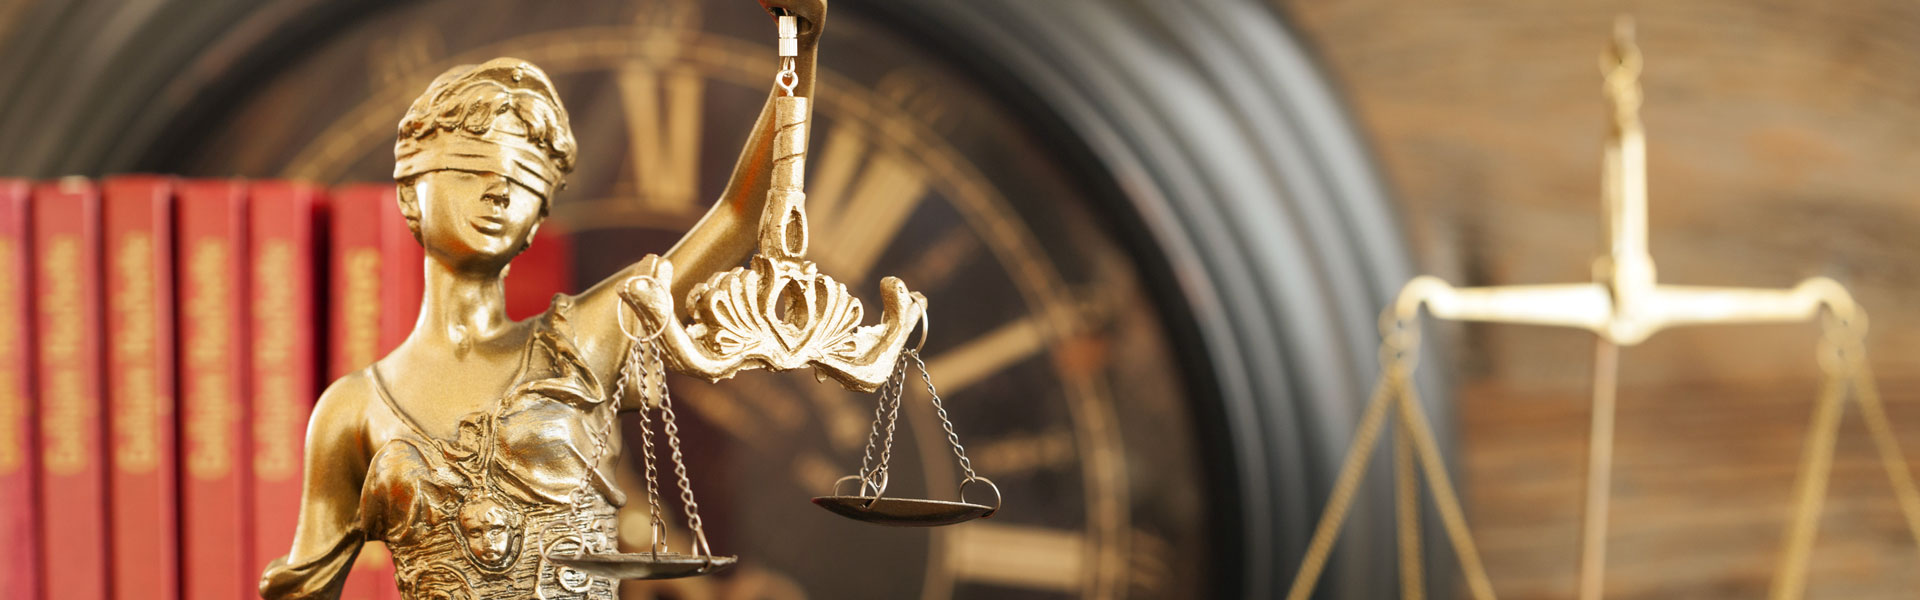 Scales of Justice | Ensuring Estate Plans to Help Your Assets go to Intended Beneficiaries